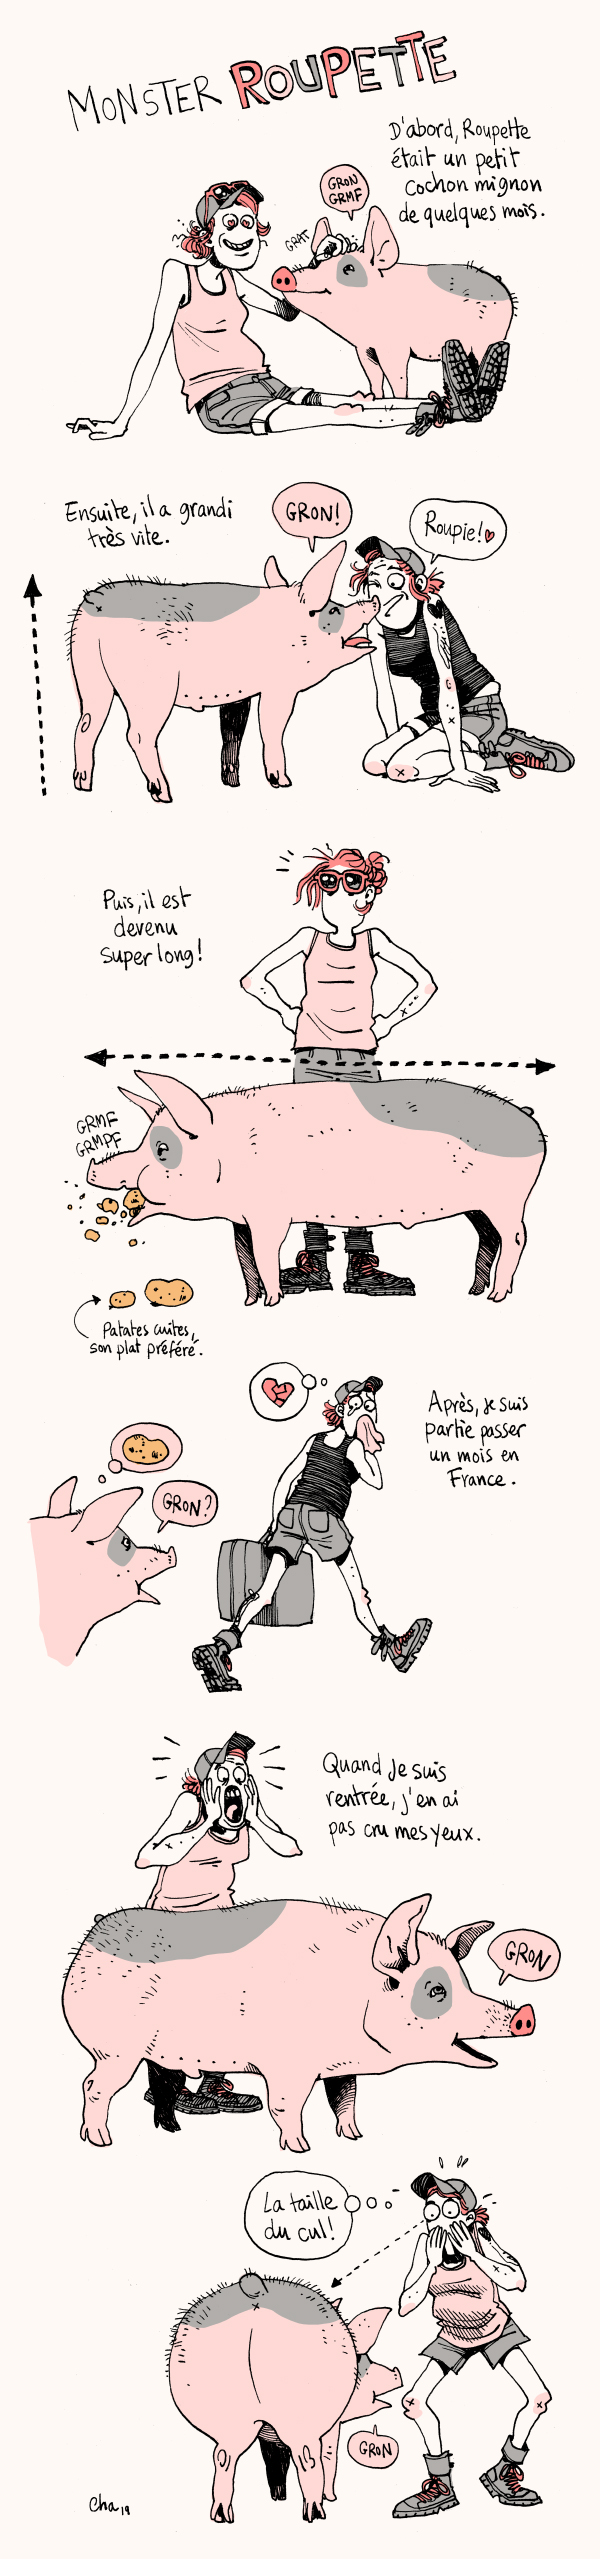 Monster Roupette the pig the cochon